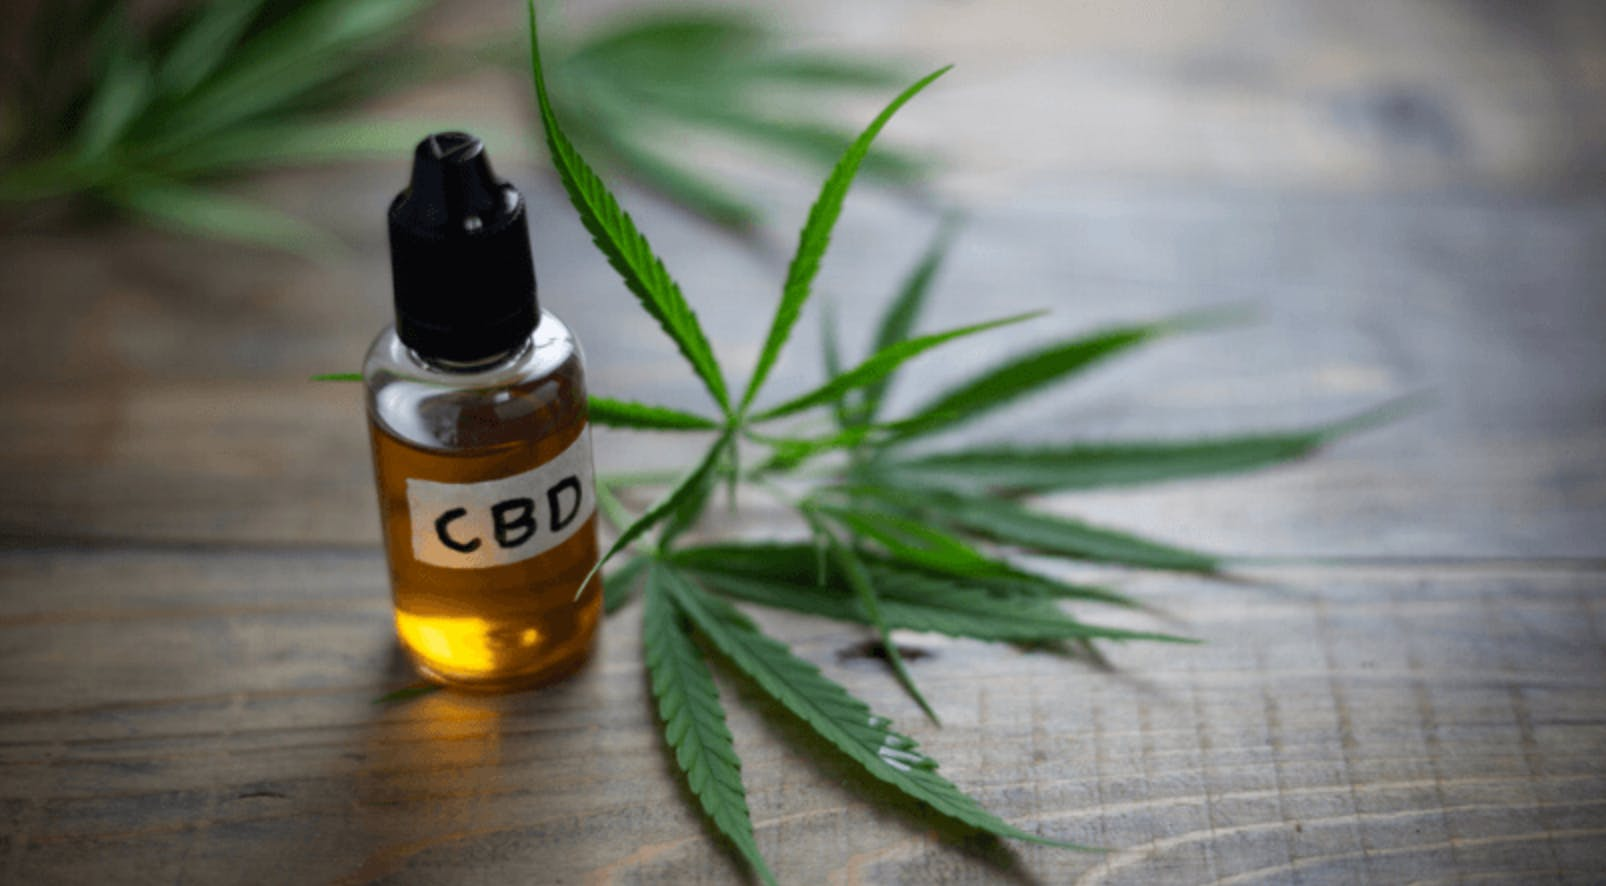 A bottle of CBD oil next to a cannabis leaf